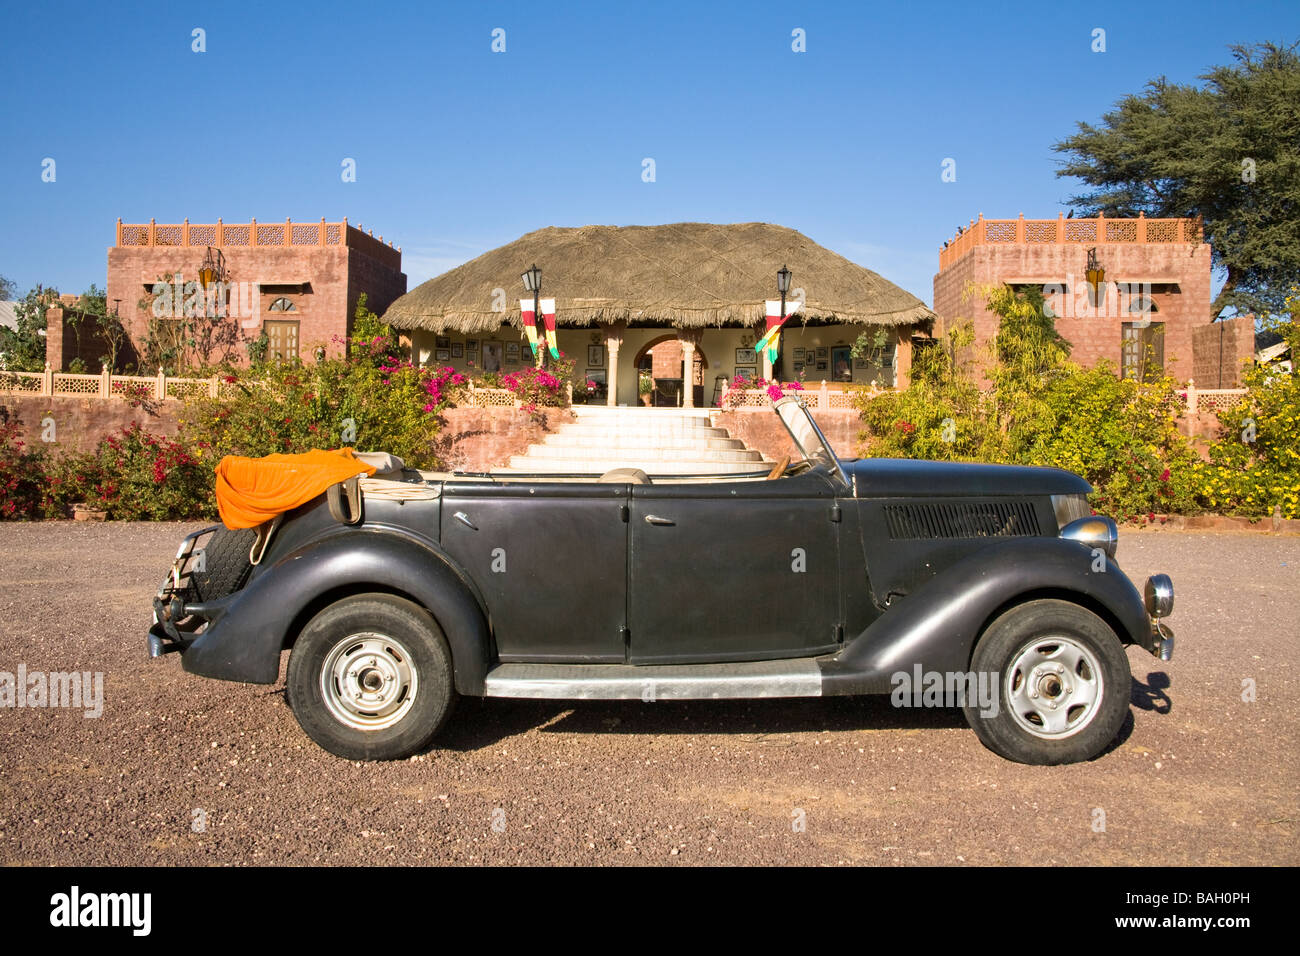 Old car in front of the reception area at Osian Camel Camp, Osian, Rajasthan, India - Stock Image